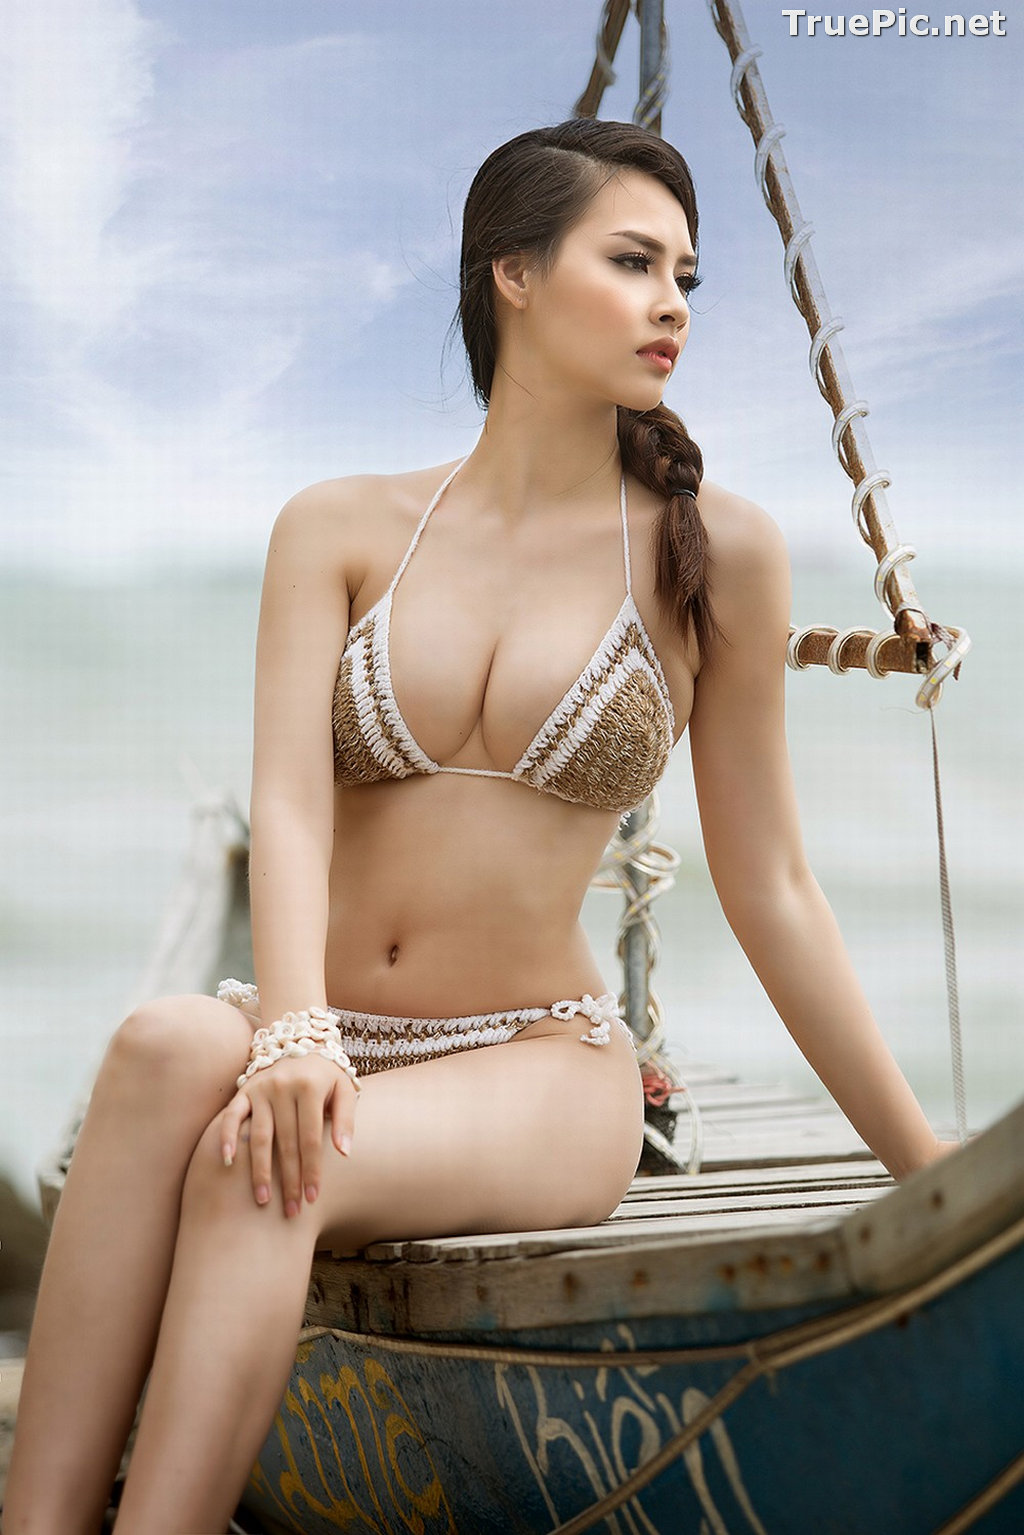 Image Vietnamese Hot Model - Thuy Trang - Wool Bikini Collection - TruePic.net - Picture-1